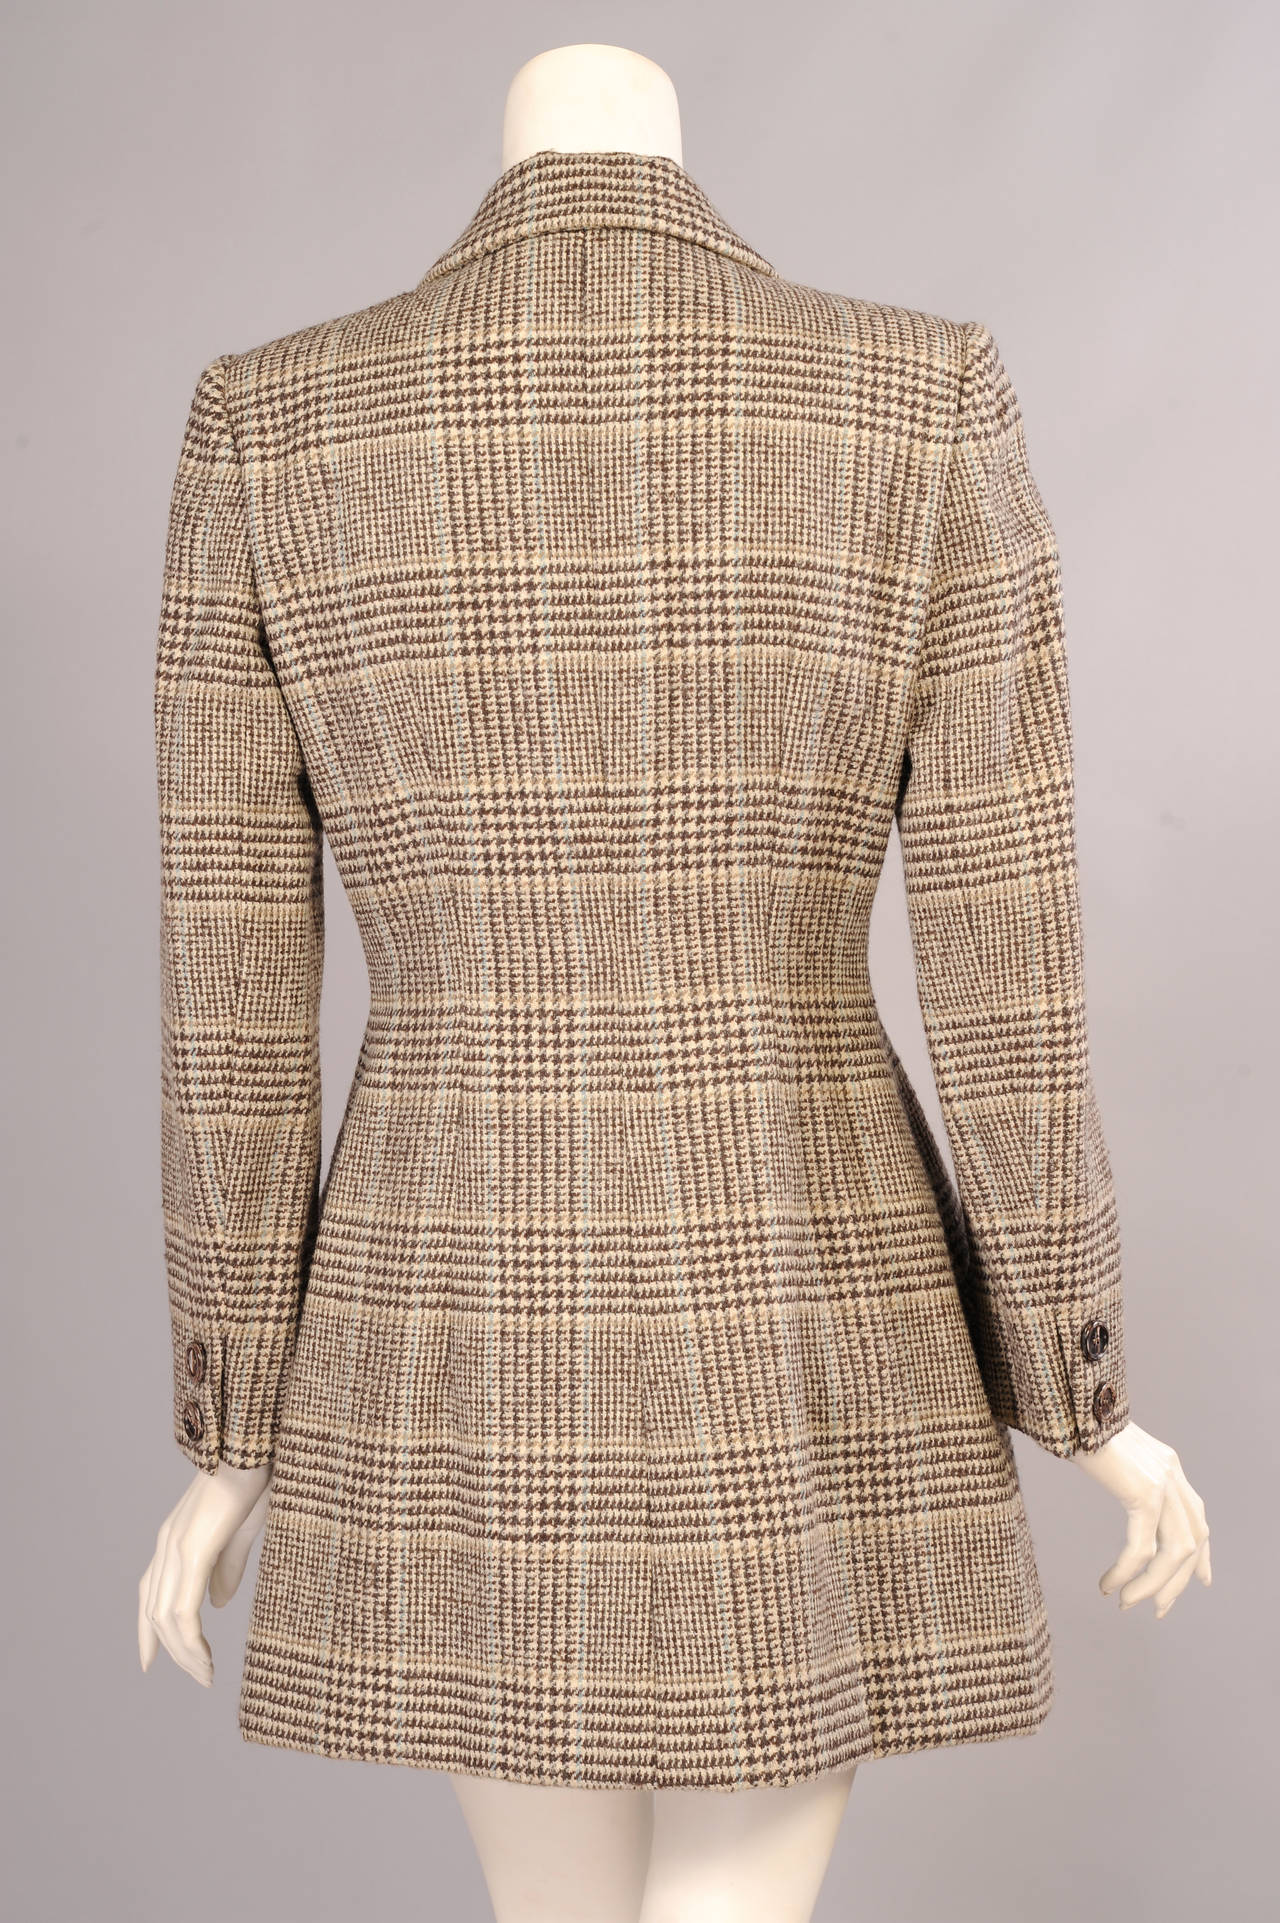 Patou Haute Couture Wool Plaid Jacket by Christian Lacroix, In Excellent Condition For Sale In New Hope, PA